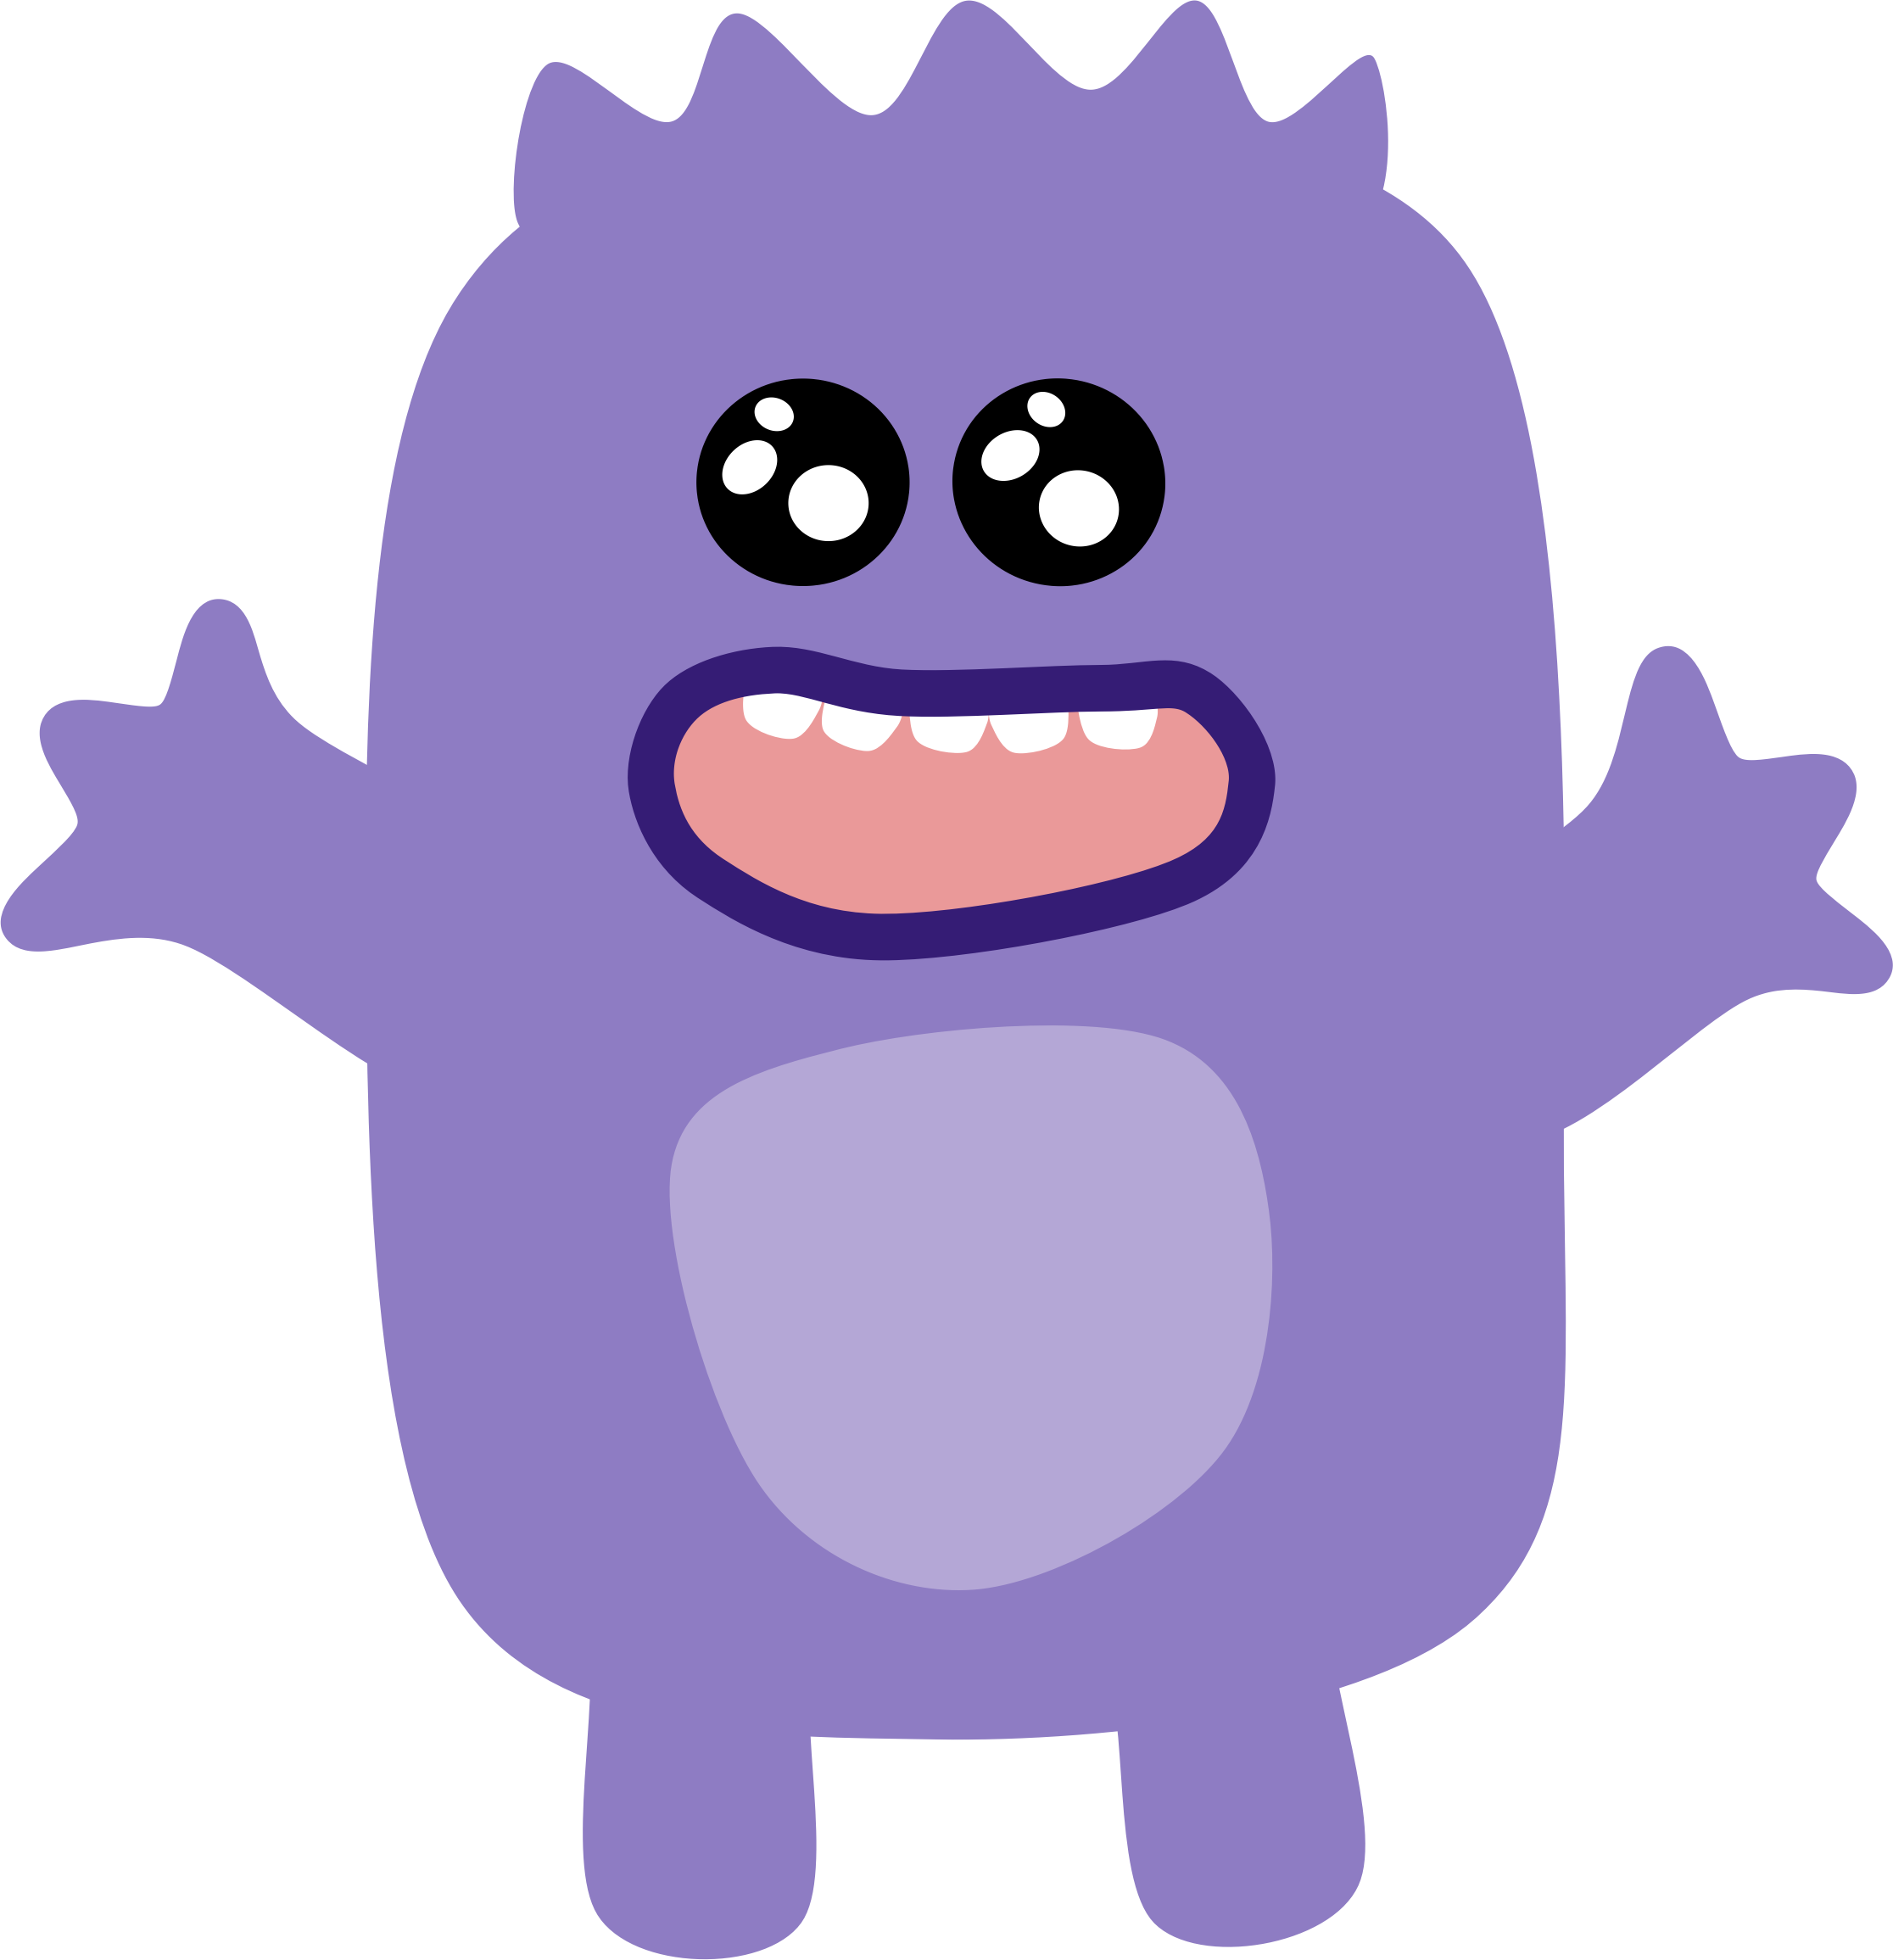 Yearbook clipart animated. Purple monster big image